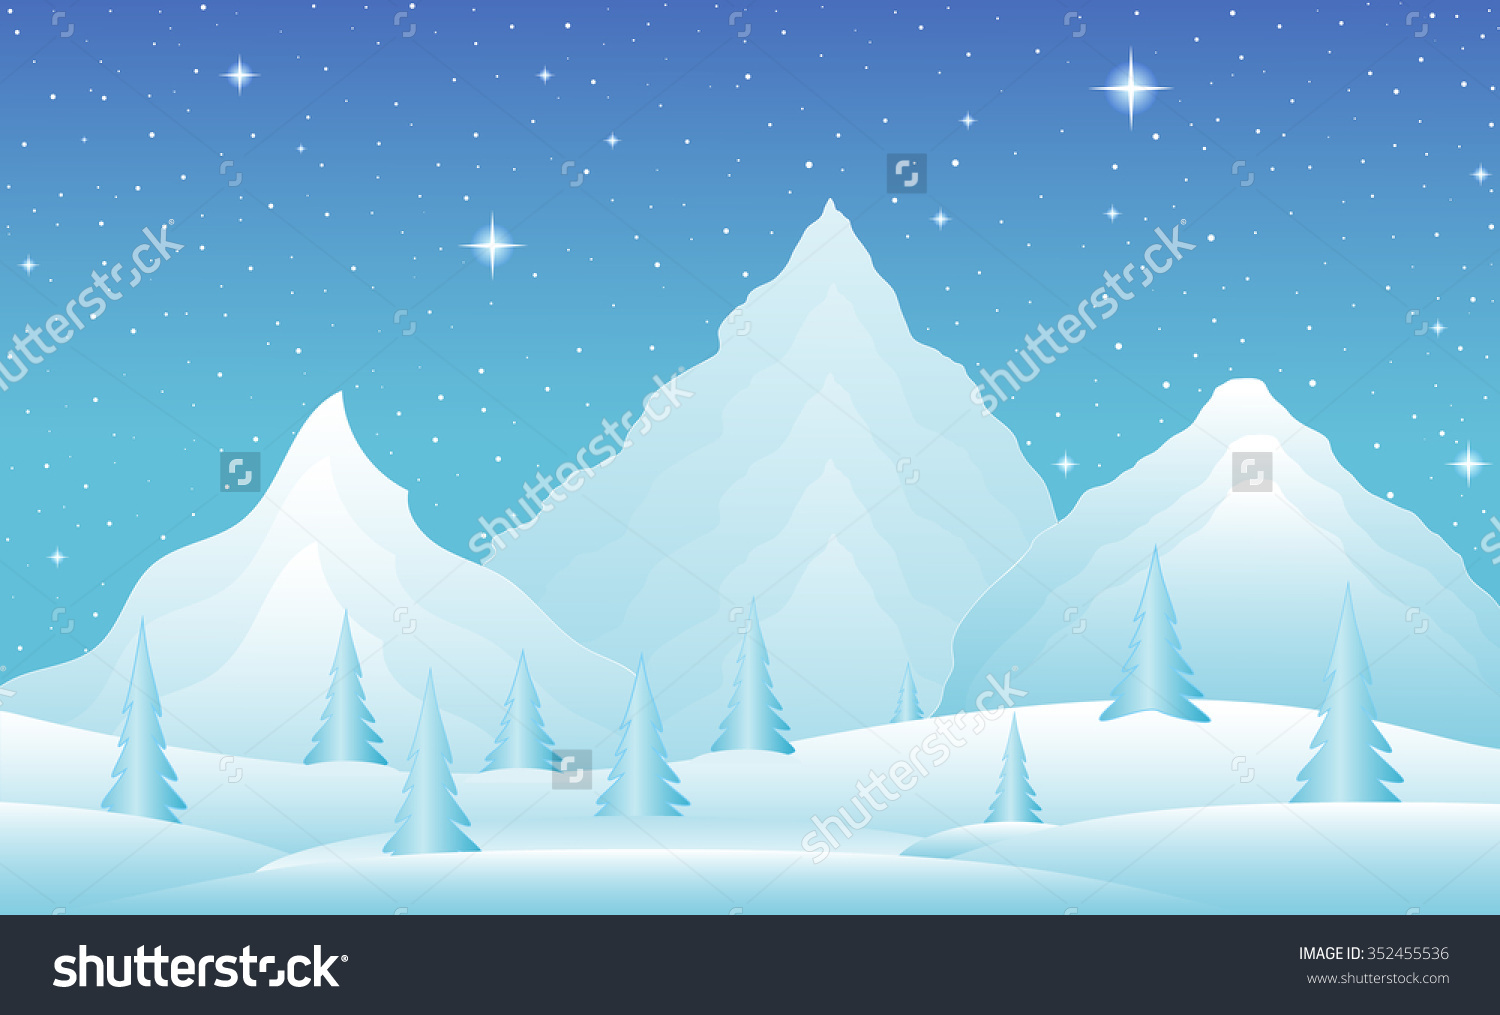 Vector Winter Landscape Icy Mountains Snowy Stock Vector 352455536.